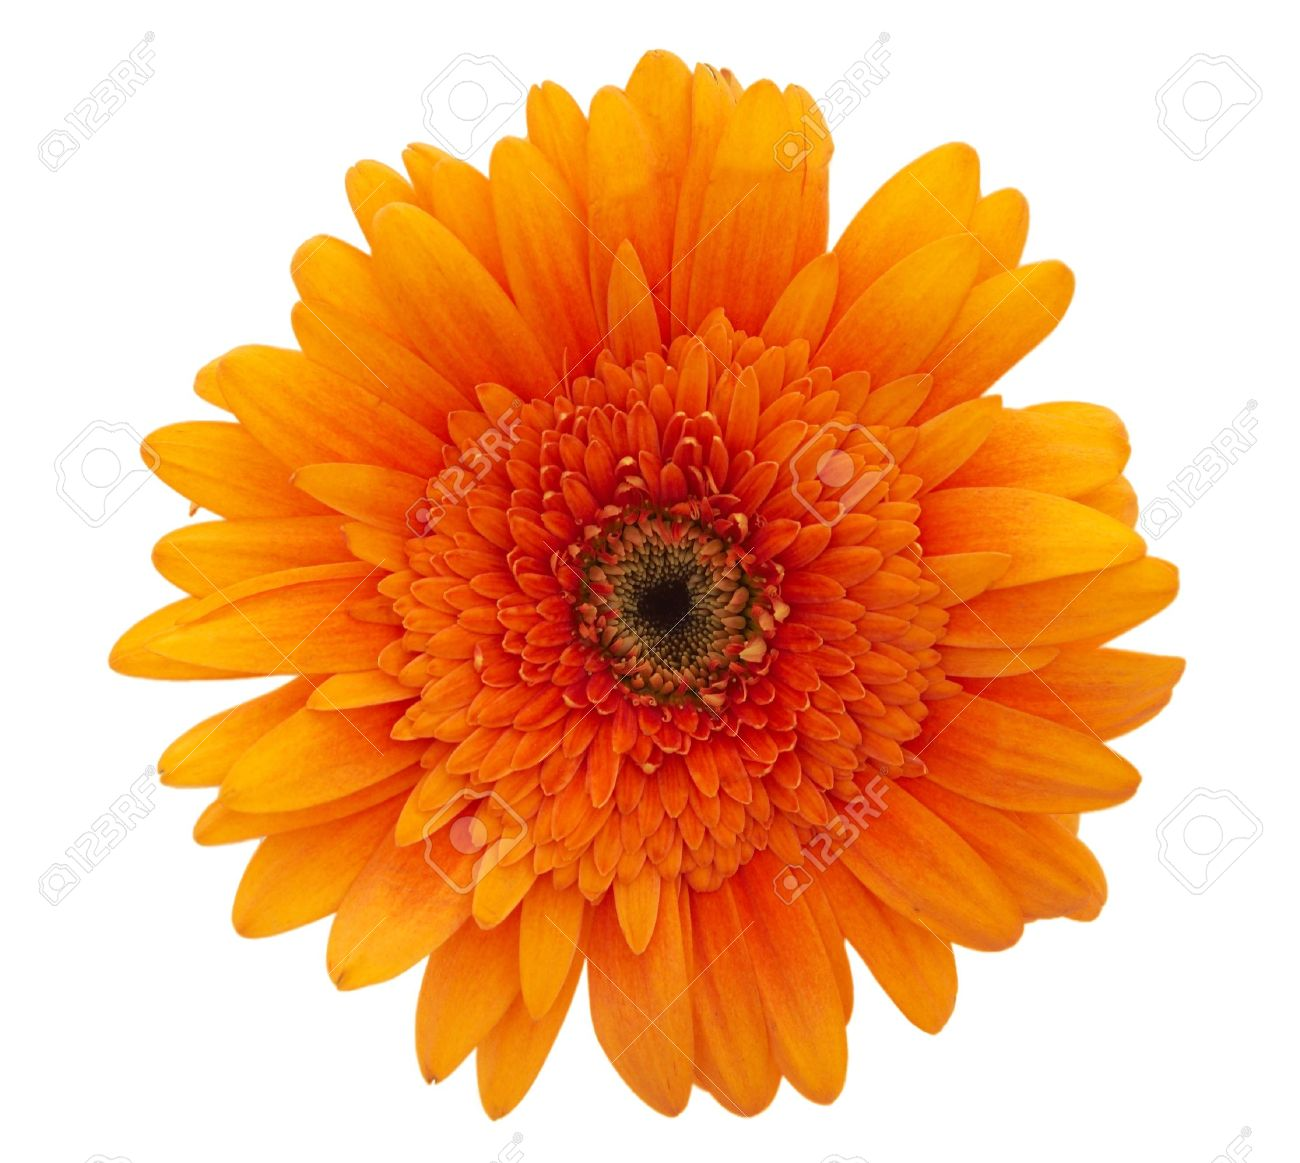 Barbeton daisy stock photos royalty free barbeton daisy images single orange daisy flower close up on white background stock photo mightylinksfo